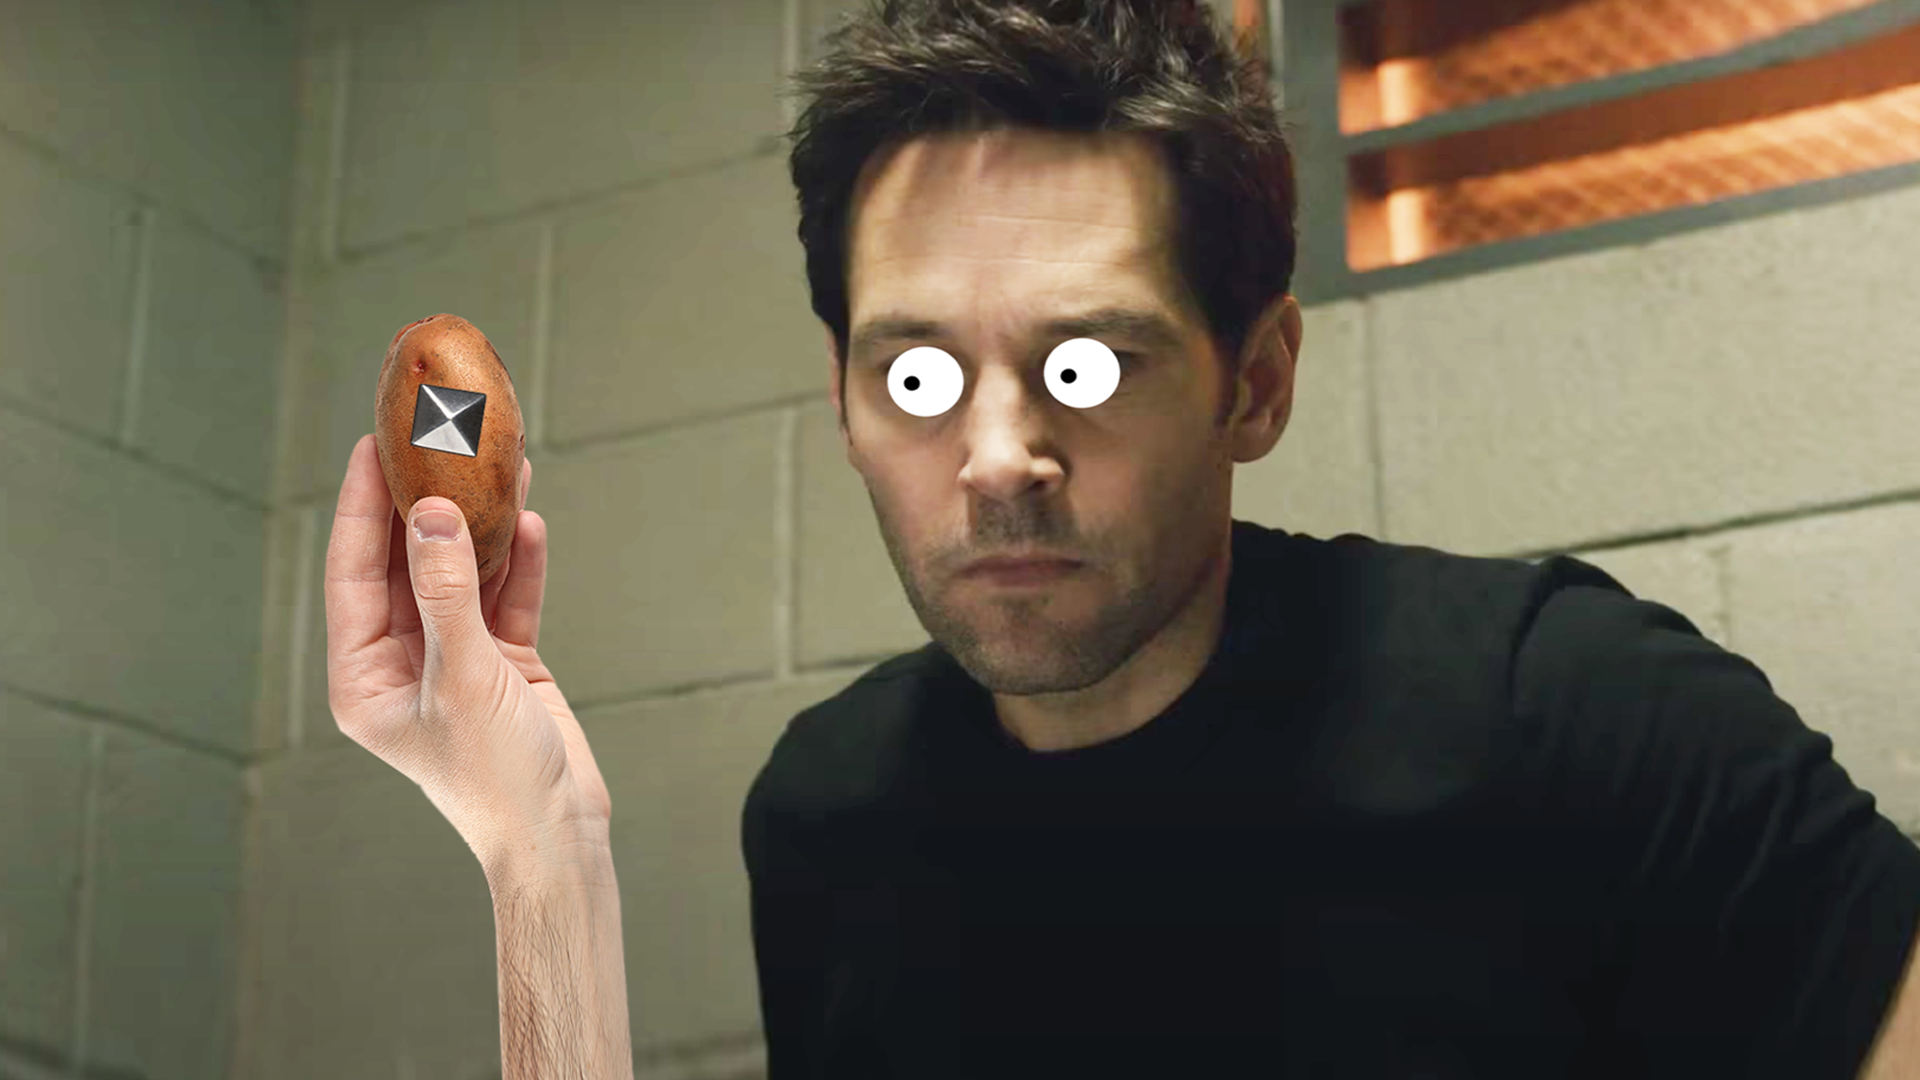 Paul Rudd holding a spud with a stud in it